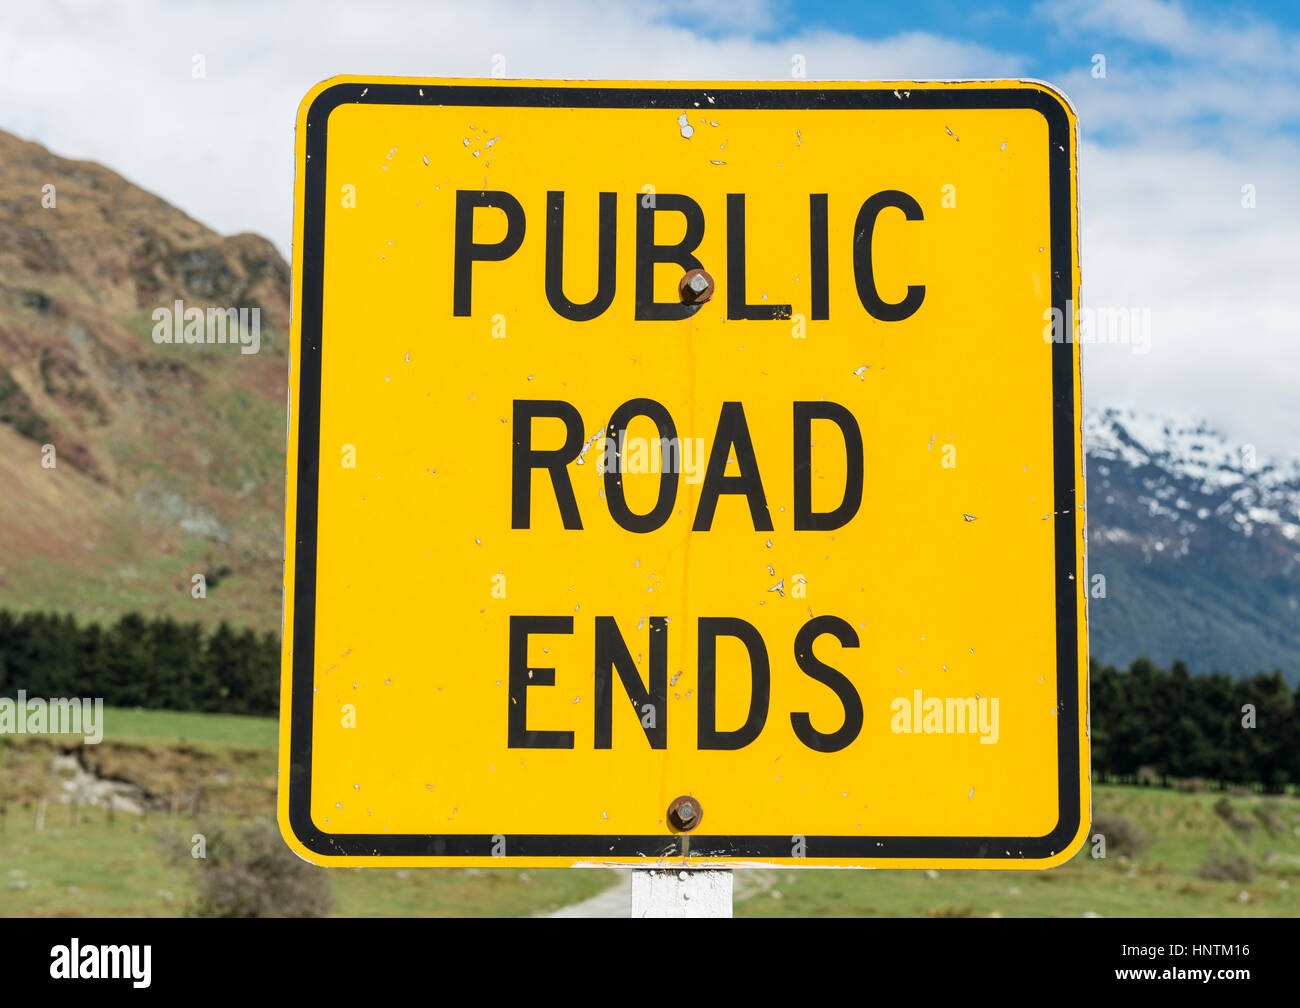 Sign, Public road ends, Mount Aspiring, Otago, New Zealand - Stock Image